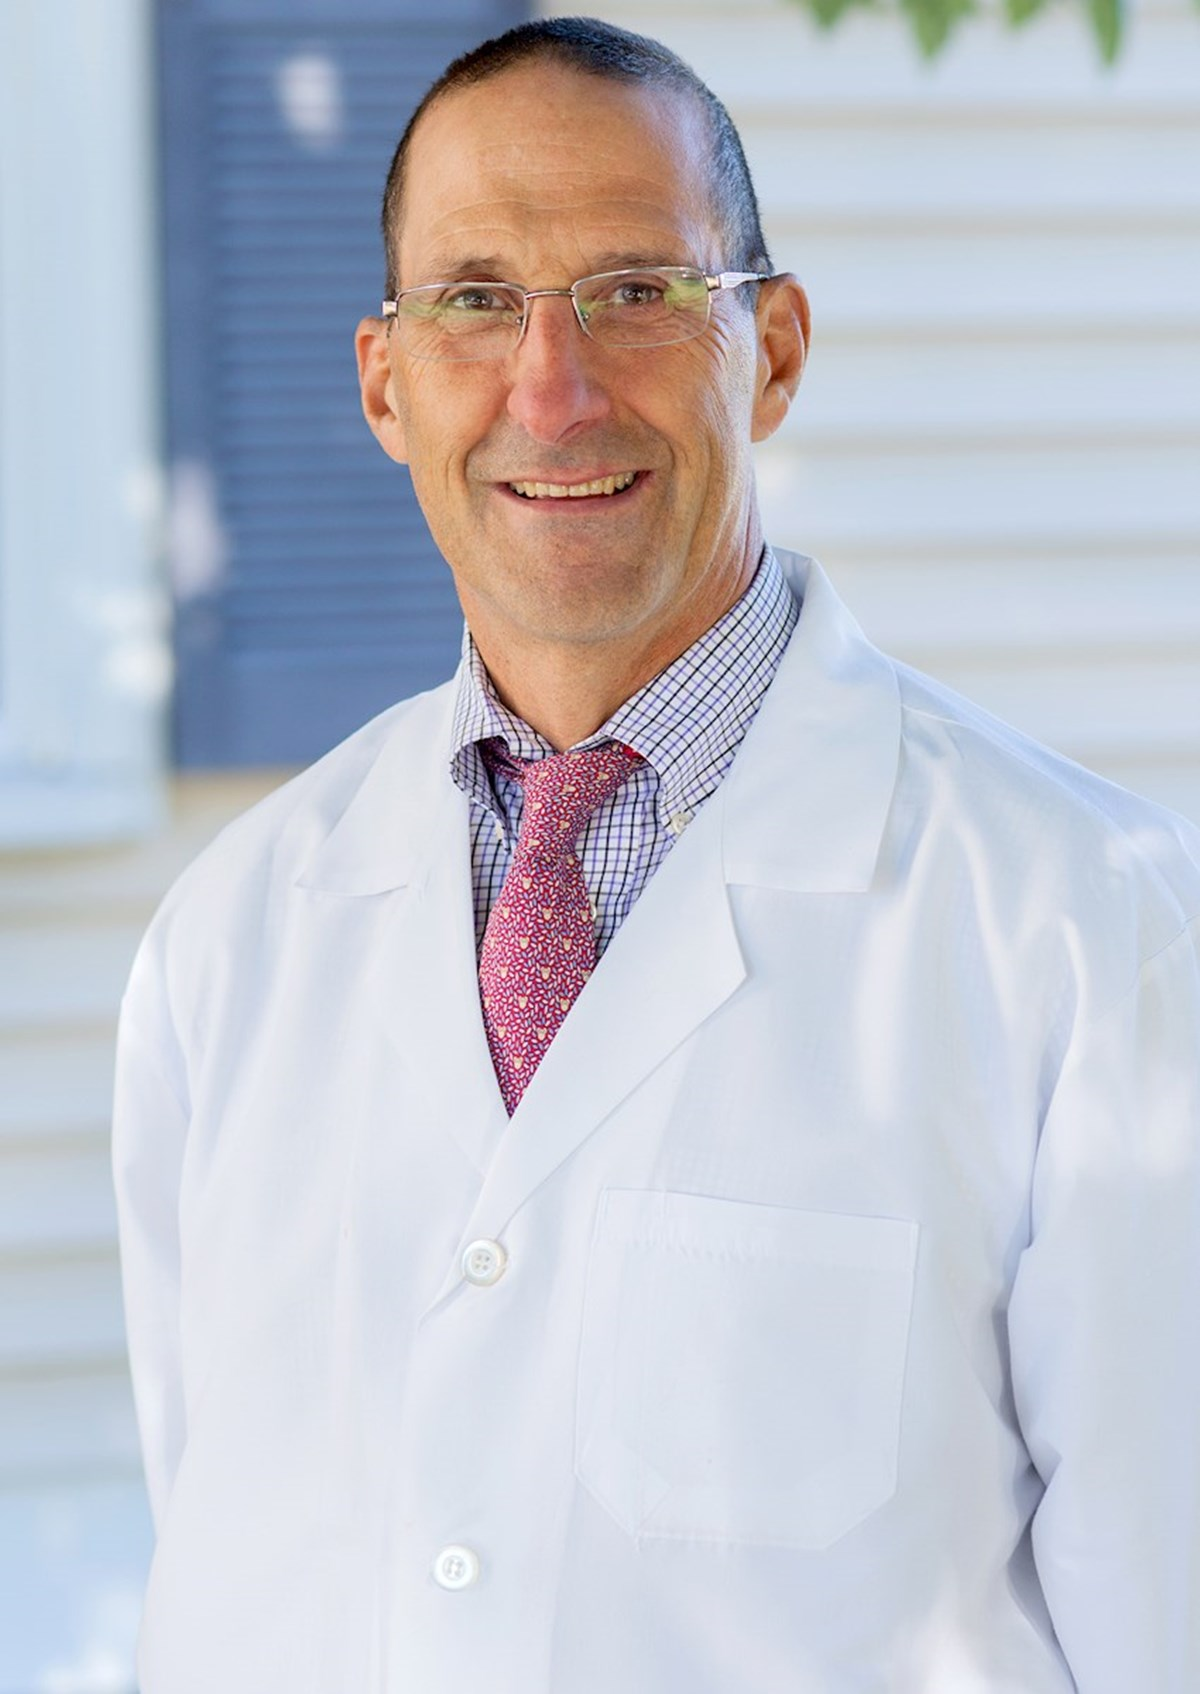 Dr. E. Bradley Miller joins South County Urology